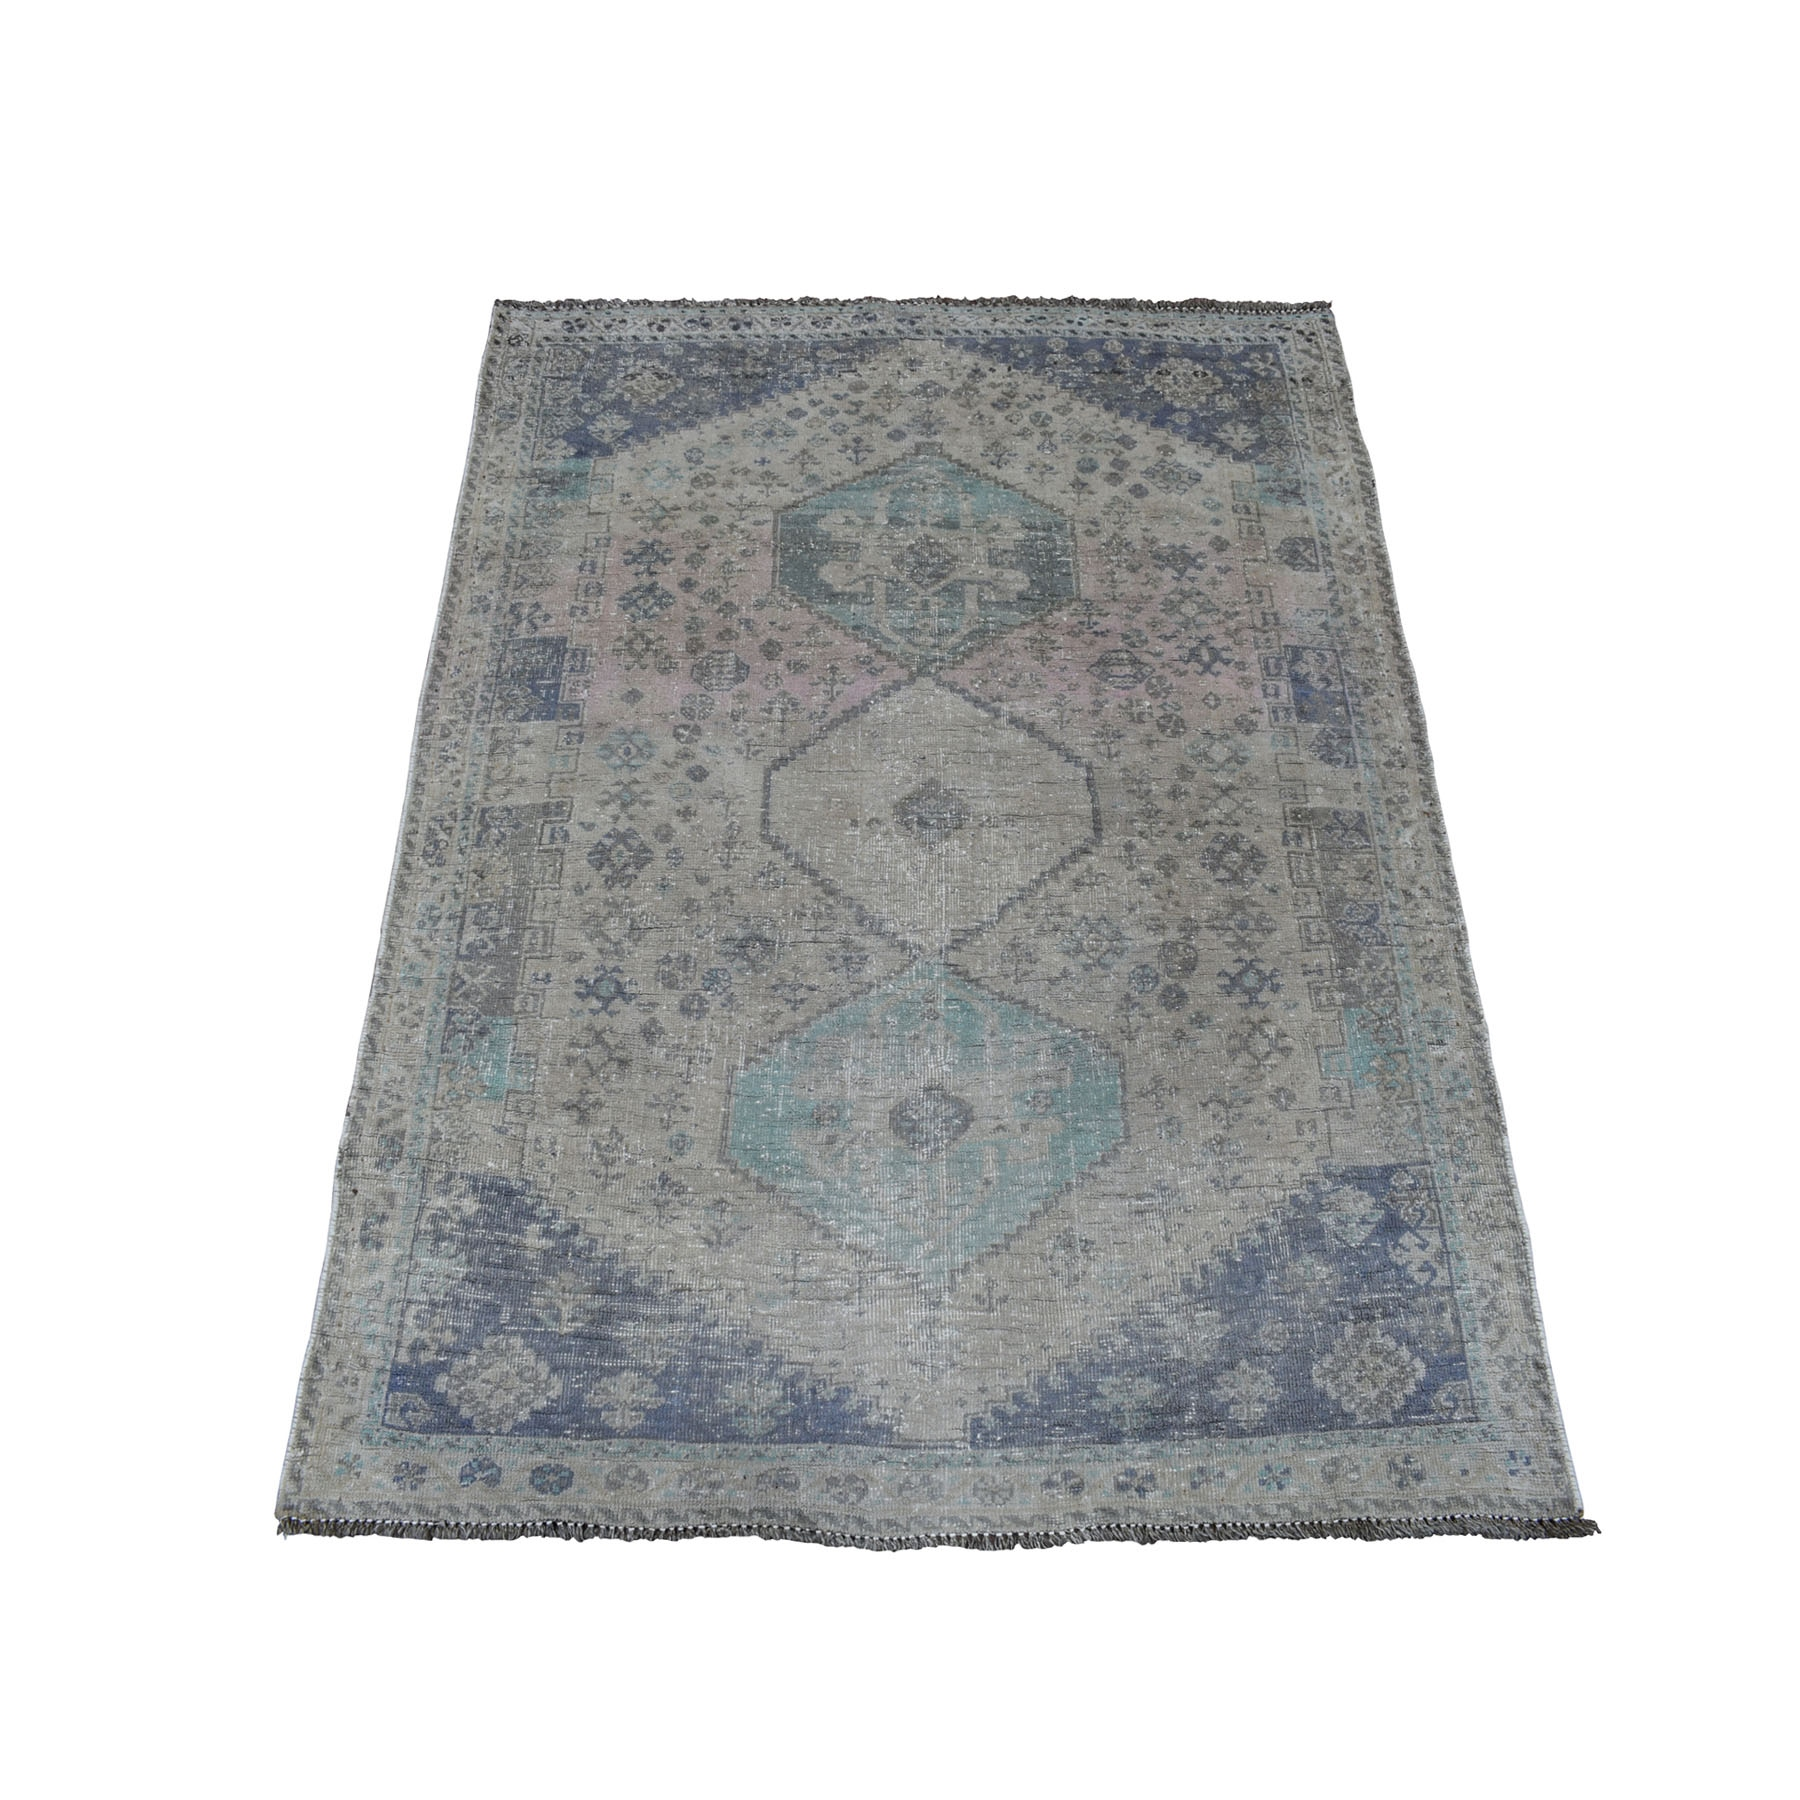 "3'8""X4'7"" Vintage And Worn Down Distressed Colors Persian Qashqai Hand Knotted Bohemian Rug moaed07c"